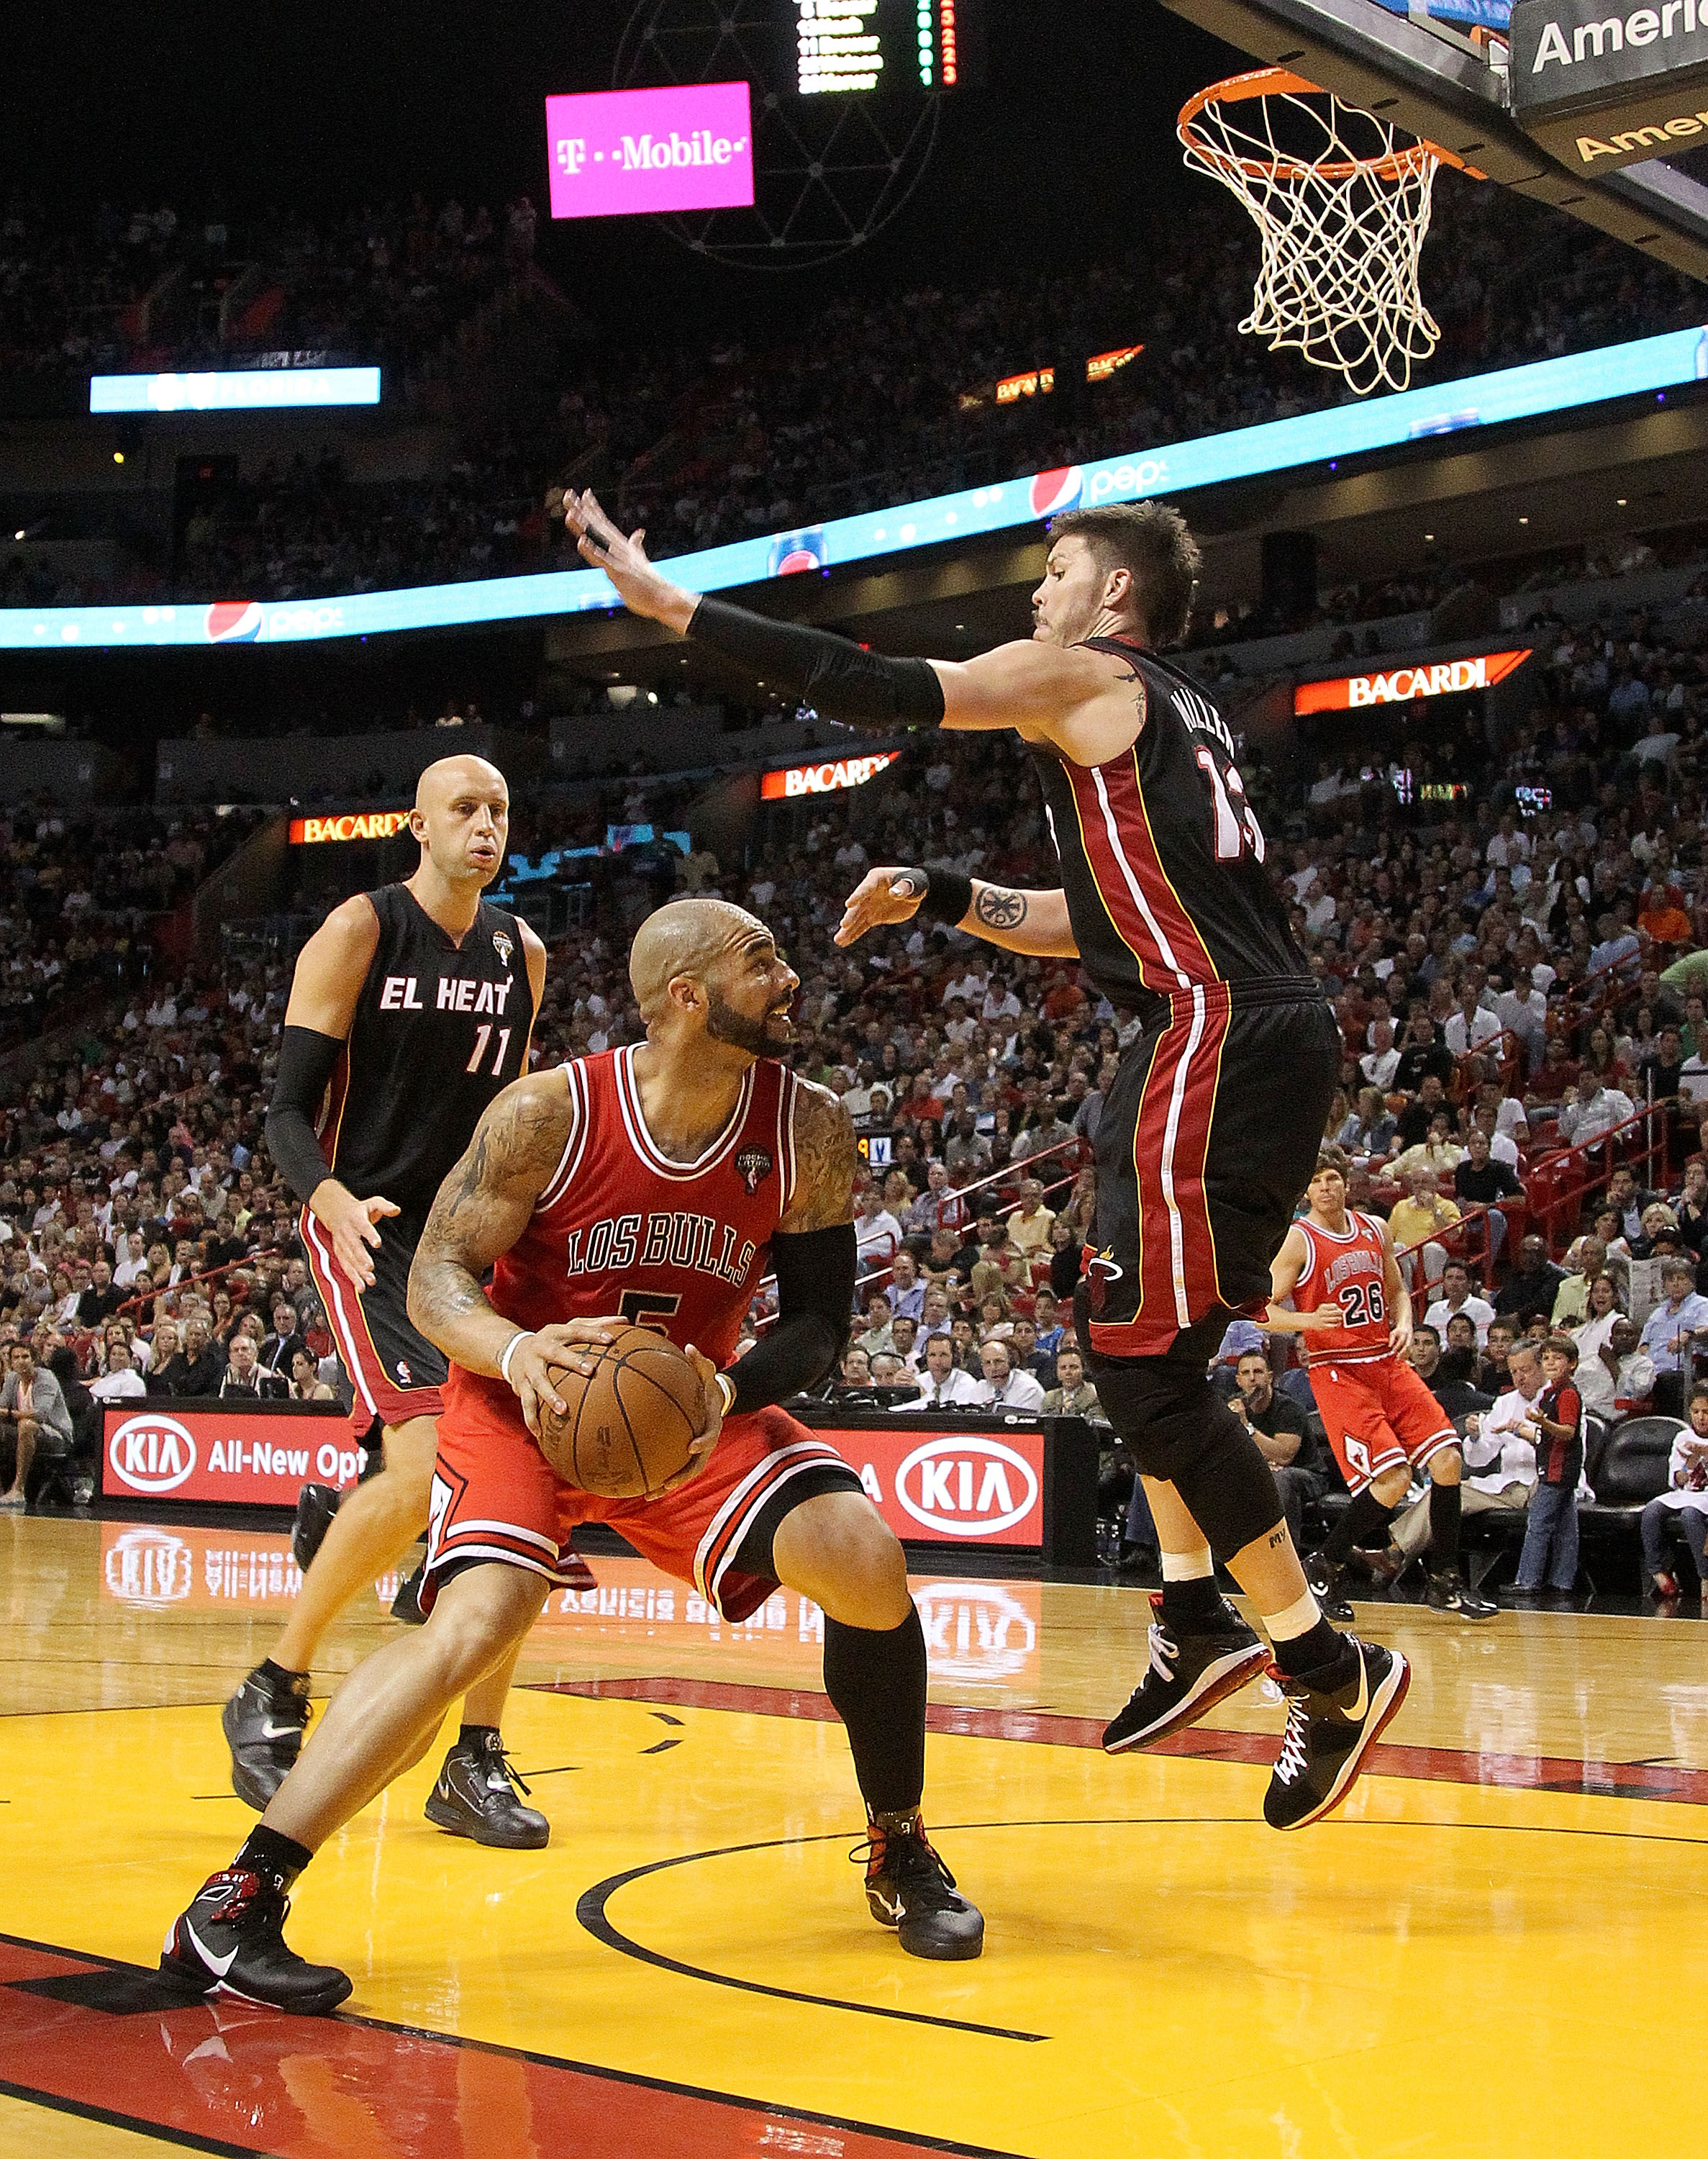 MIAMI, FL - MARCH 06:  Carlos Boozer #5 of  the Chicago Bulls posts up Mike Miller #13 of the Miami Heat during a game at American Airlines Arena on March 6, 2011 in Miami, Florida. NOTE TO USER: User expressly acknowledges and agrees that, by downloading